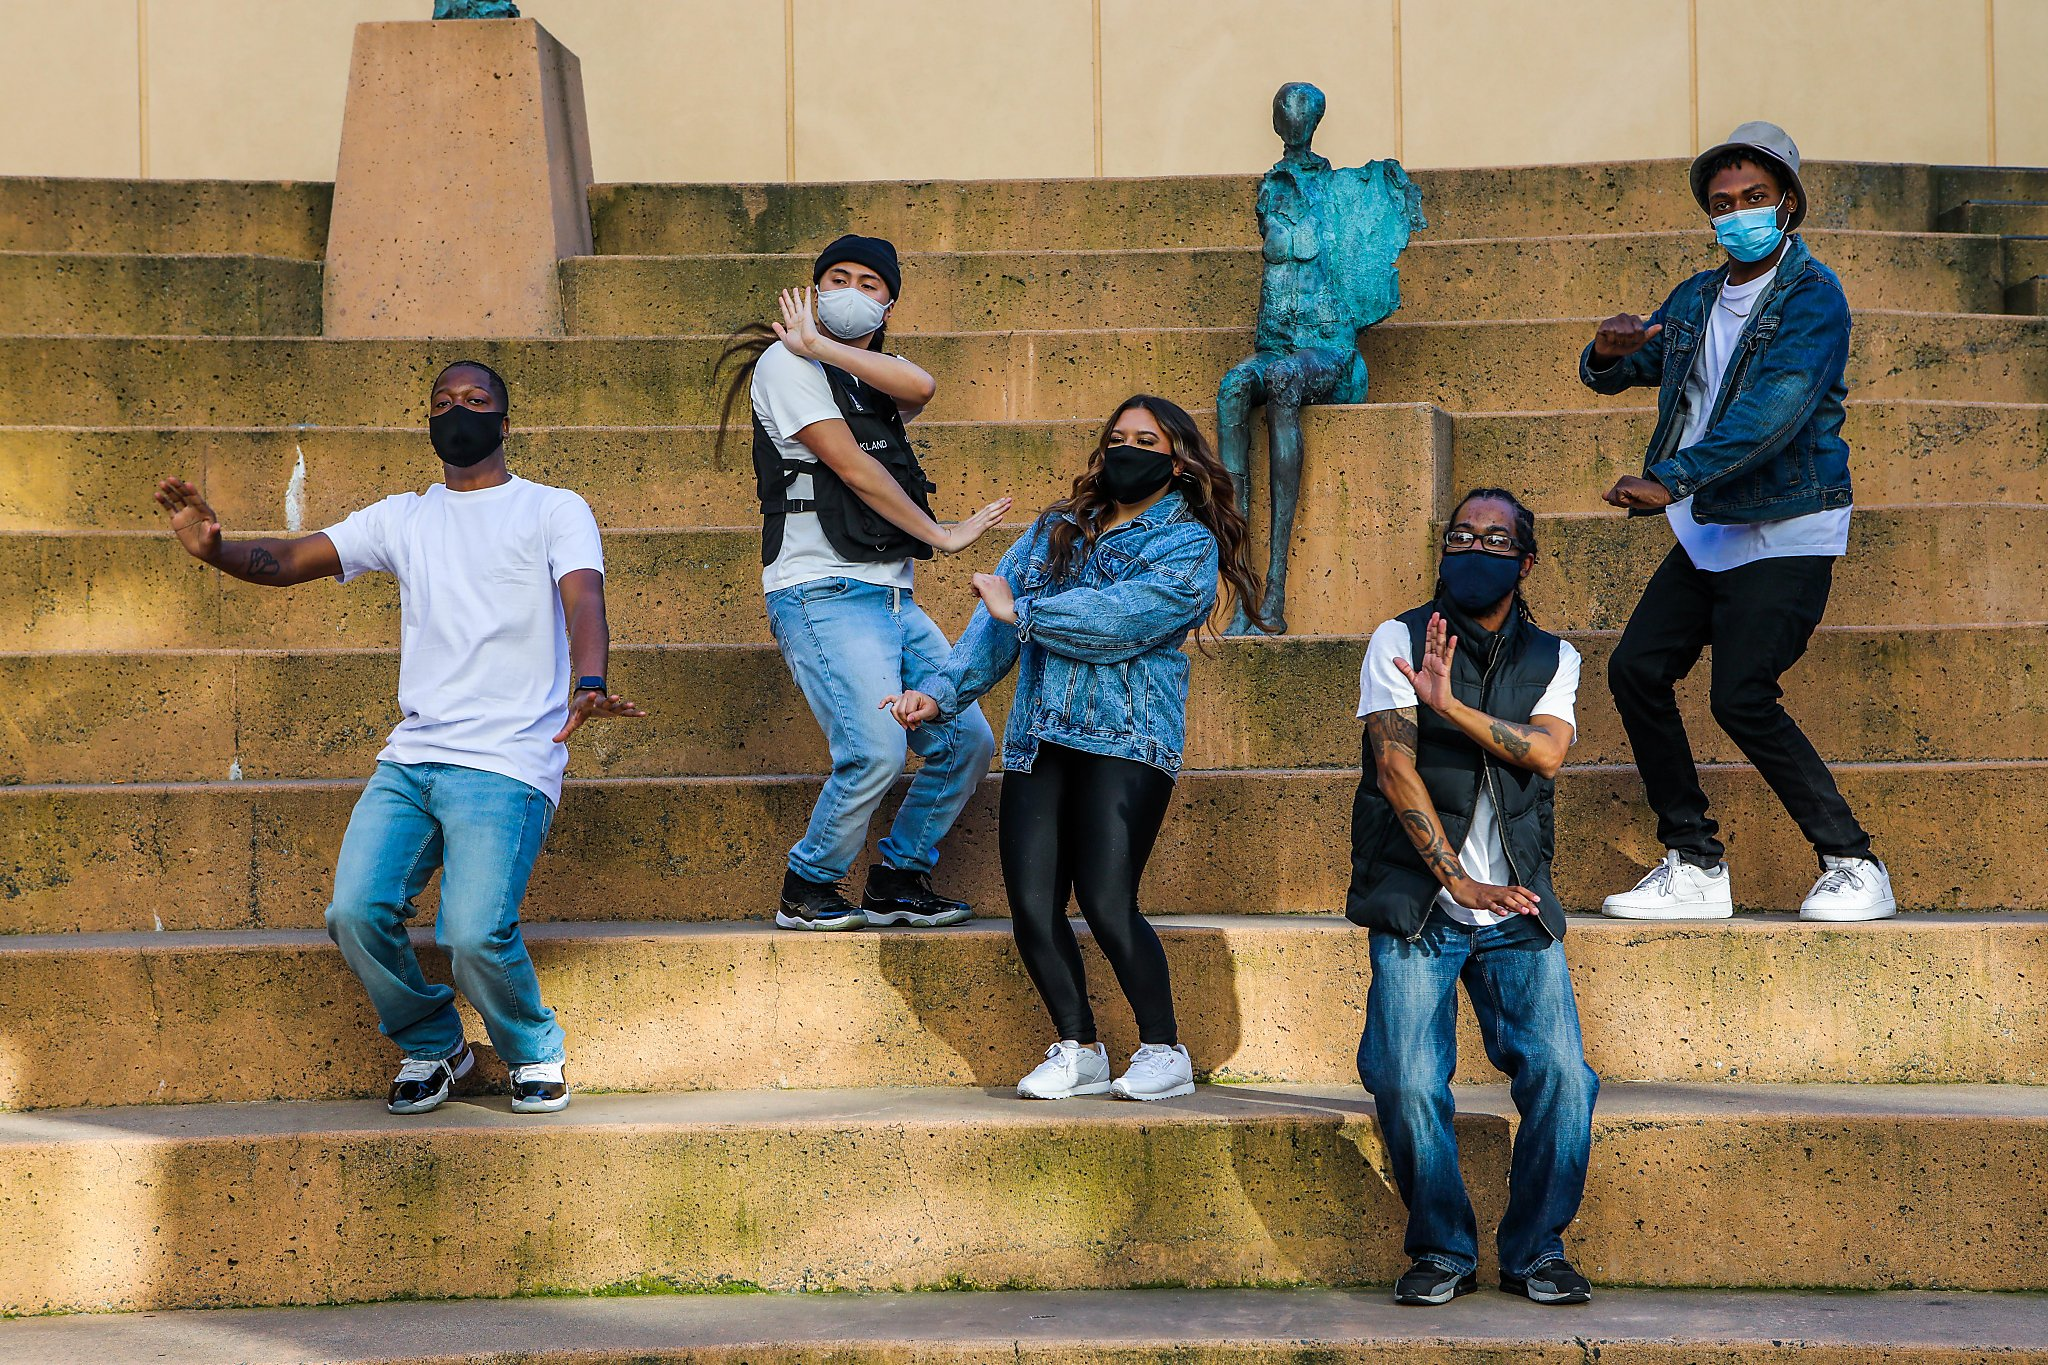 www.sfchronicle.com: 'A lifesaving thing': Hip-hop dance groups find new purpose amid pandemic